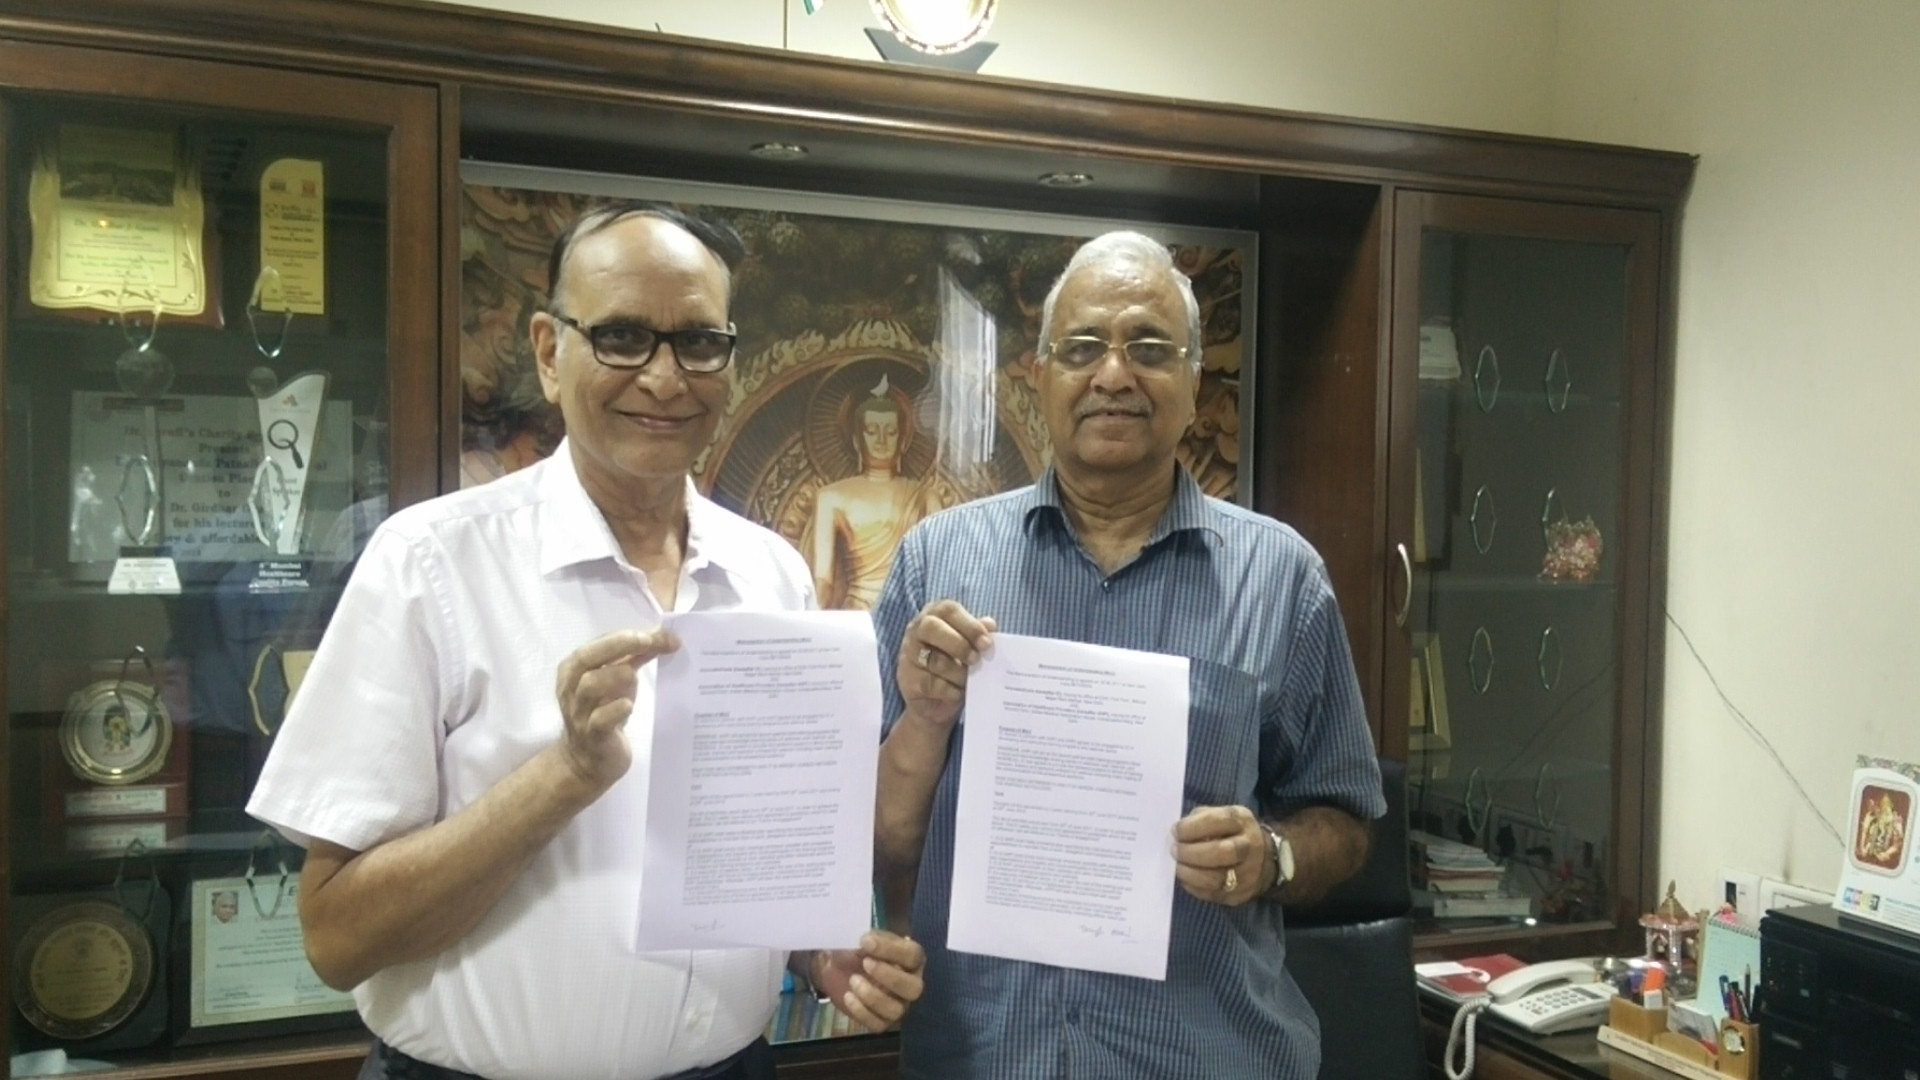 IC and AHPI exchanged MoU copies